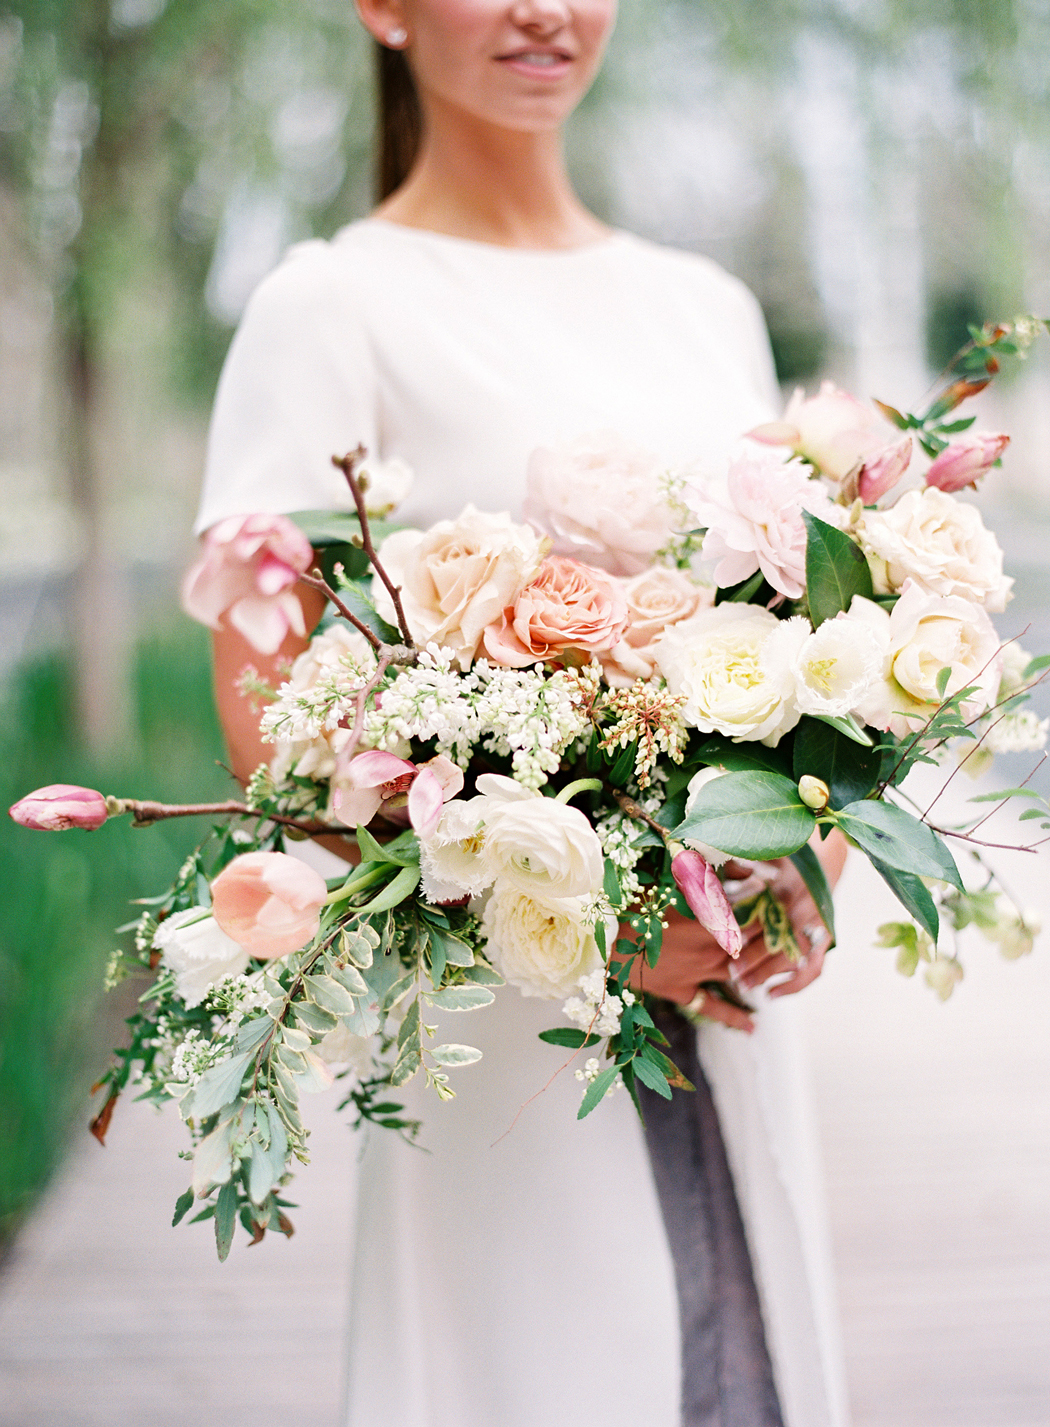 Blush, Cream, and Charcoal wedding color scheme